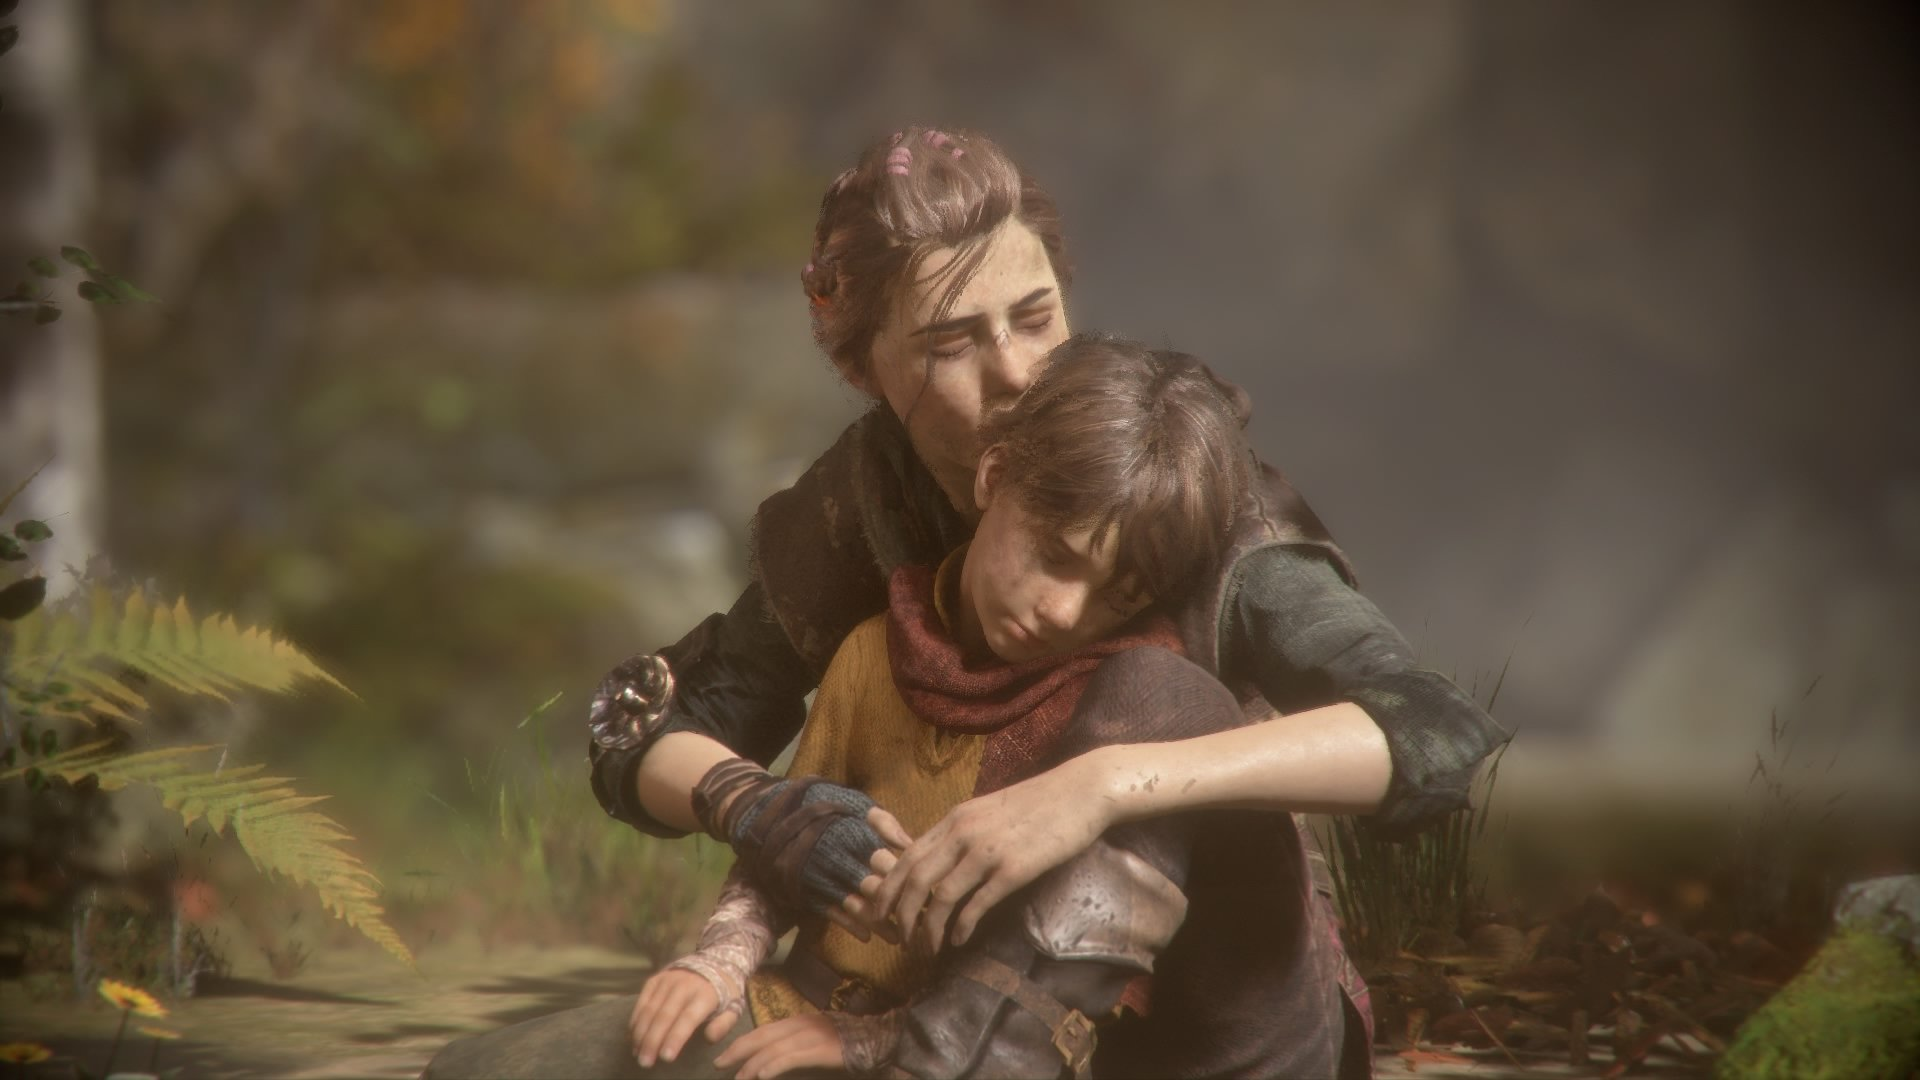 A Plague Tale - Innocence review